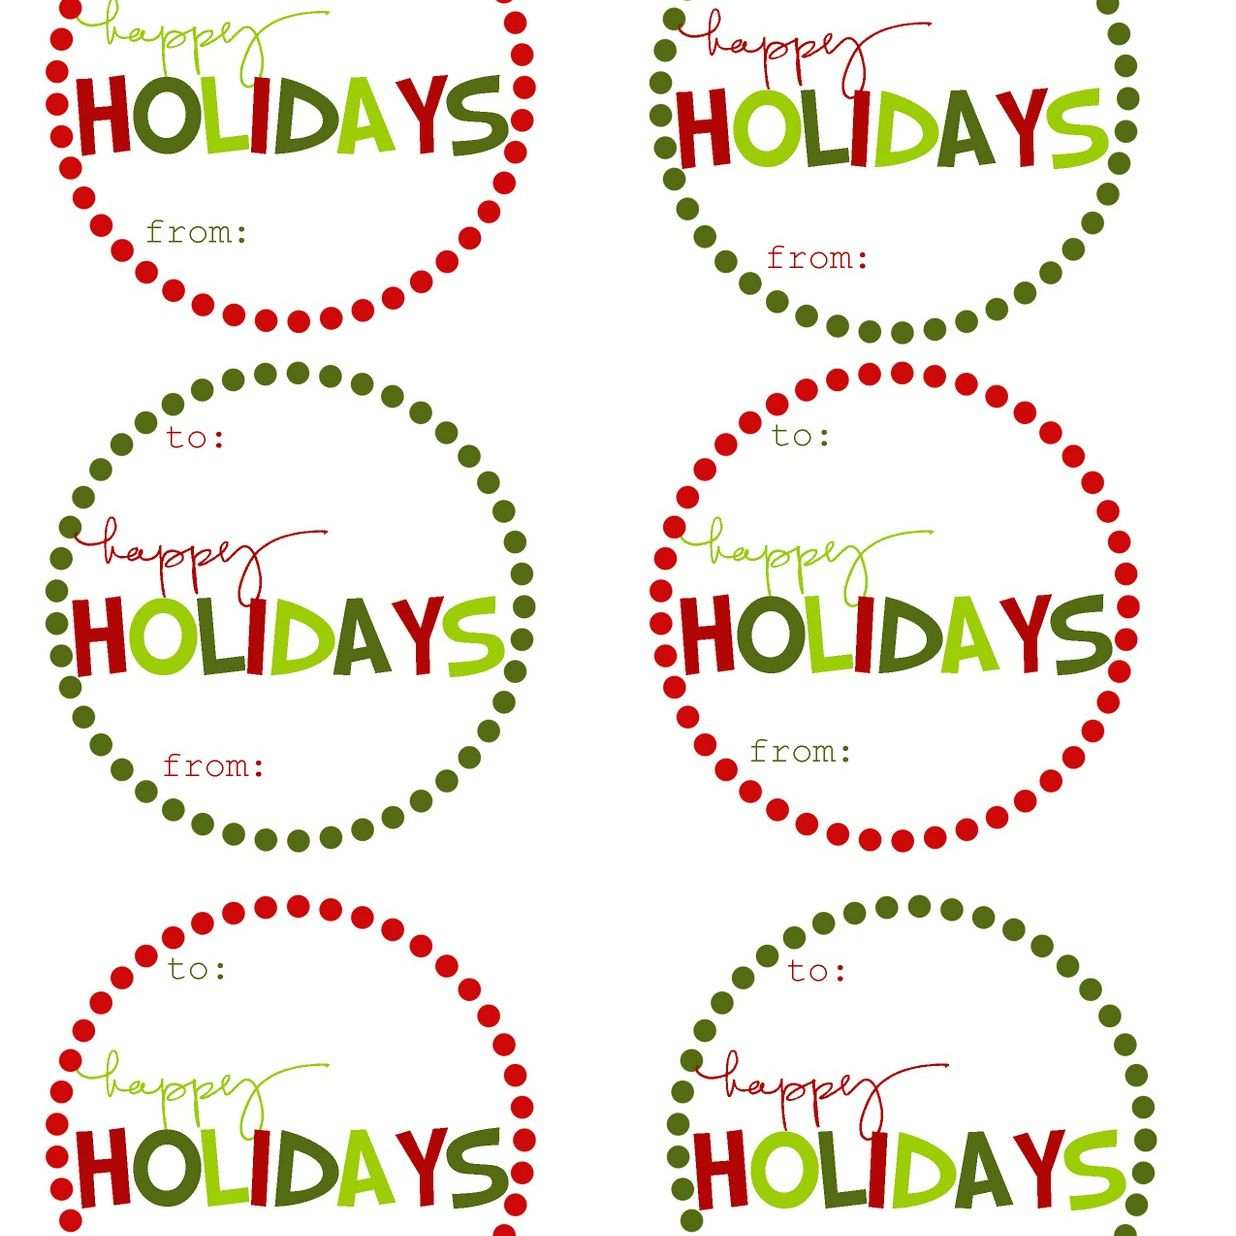 40 Sets Of Free Printable Christmas Gift Tags - Free Printable Christmas Gift Tags